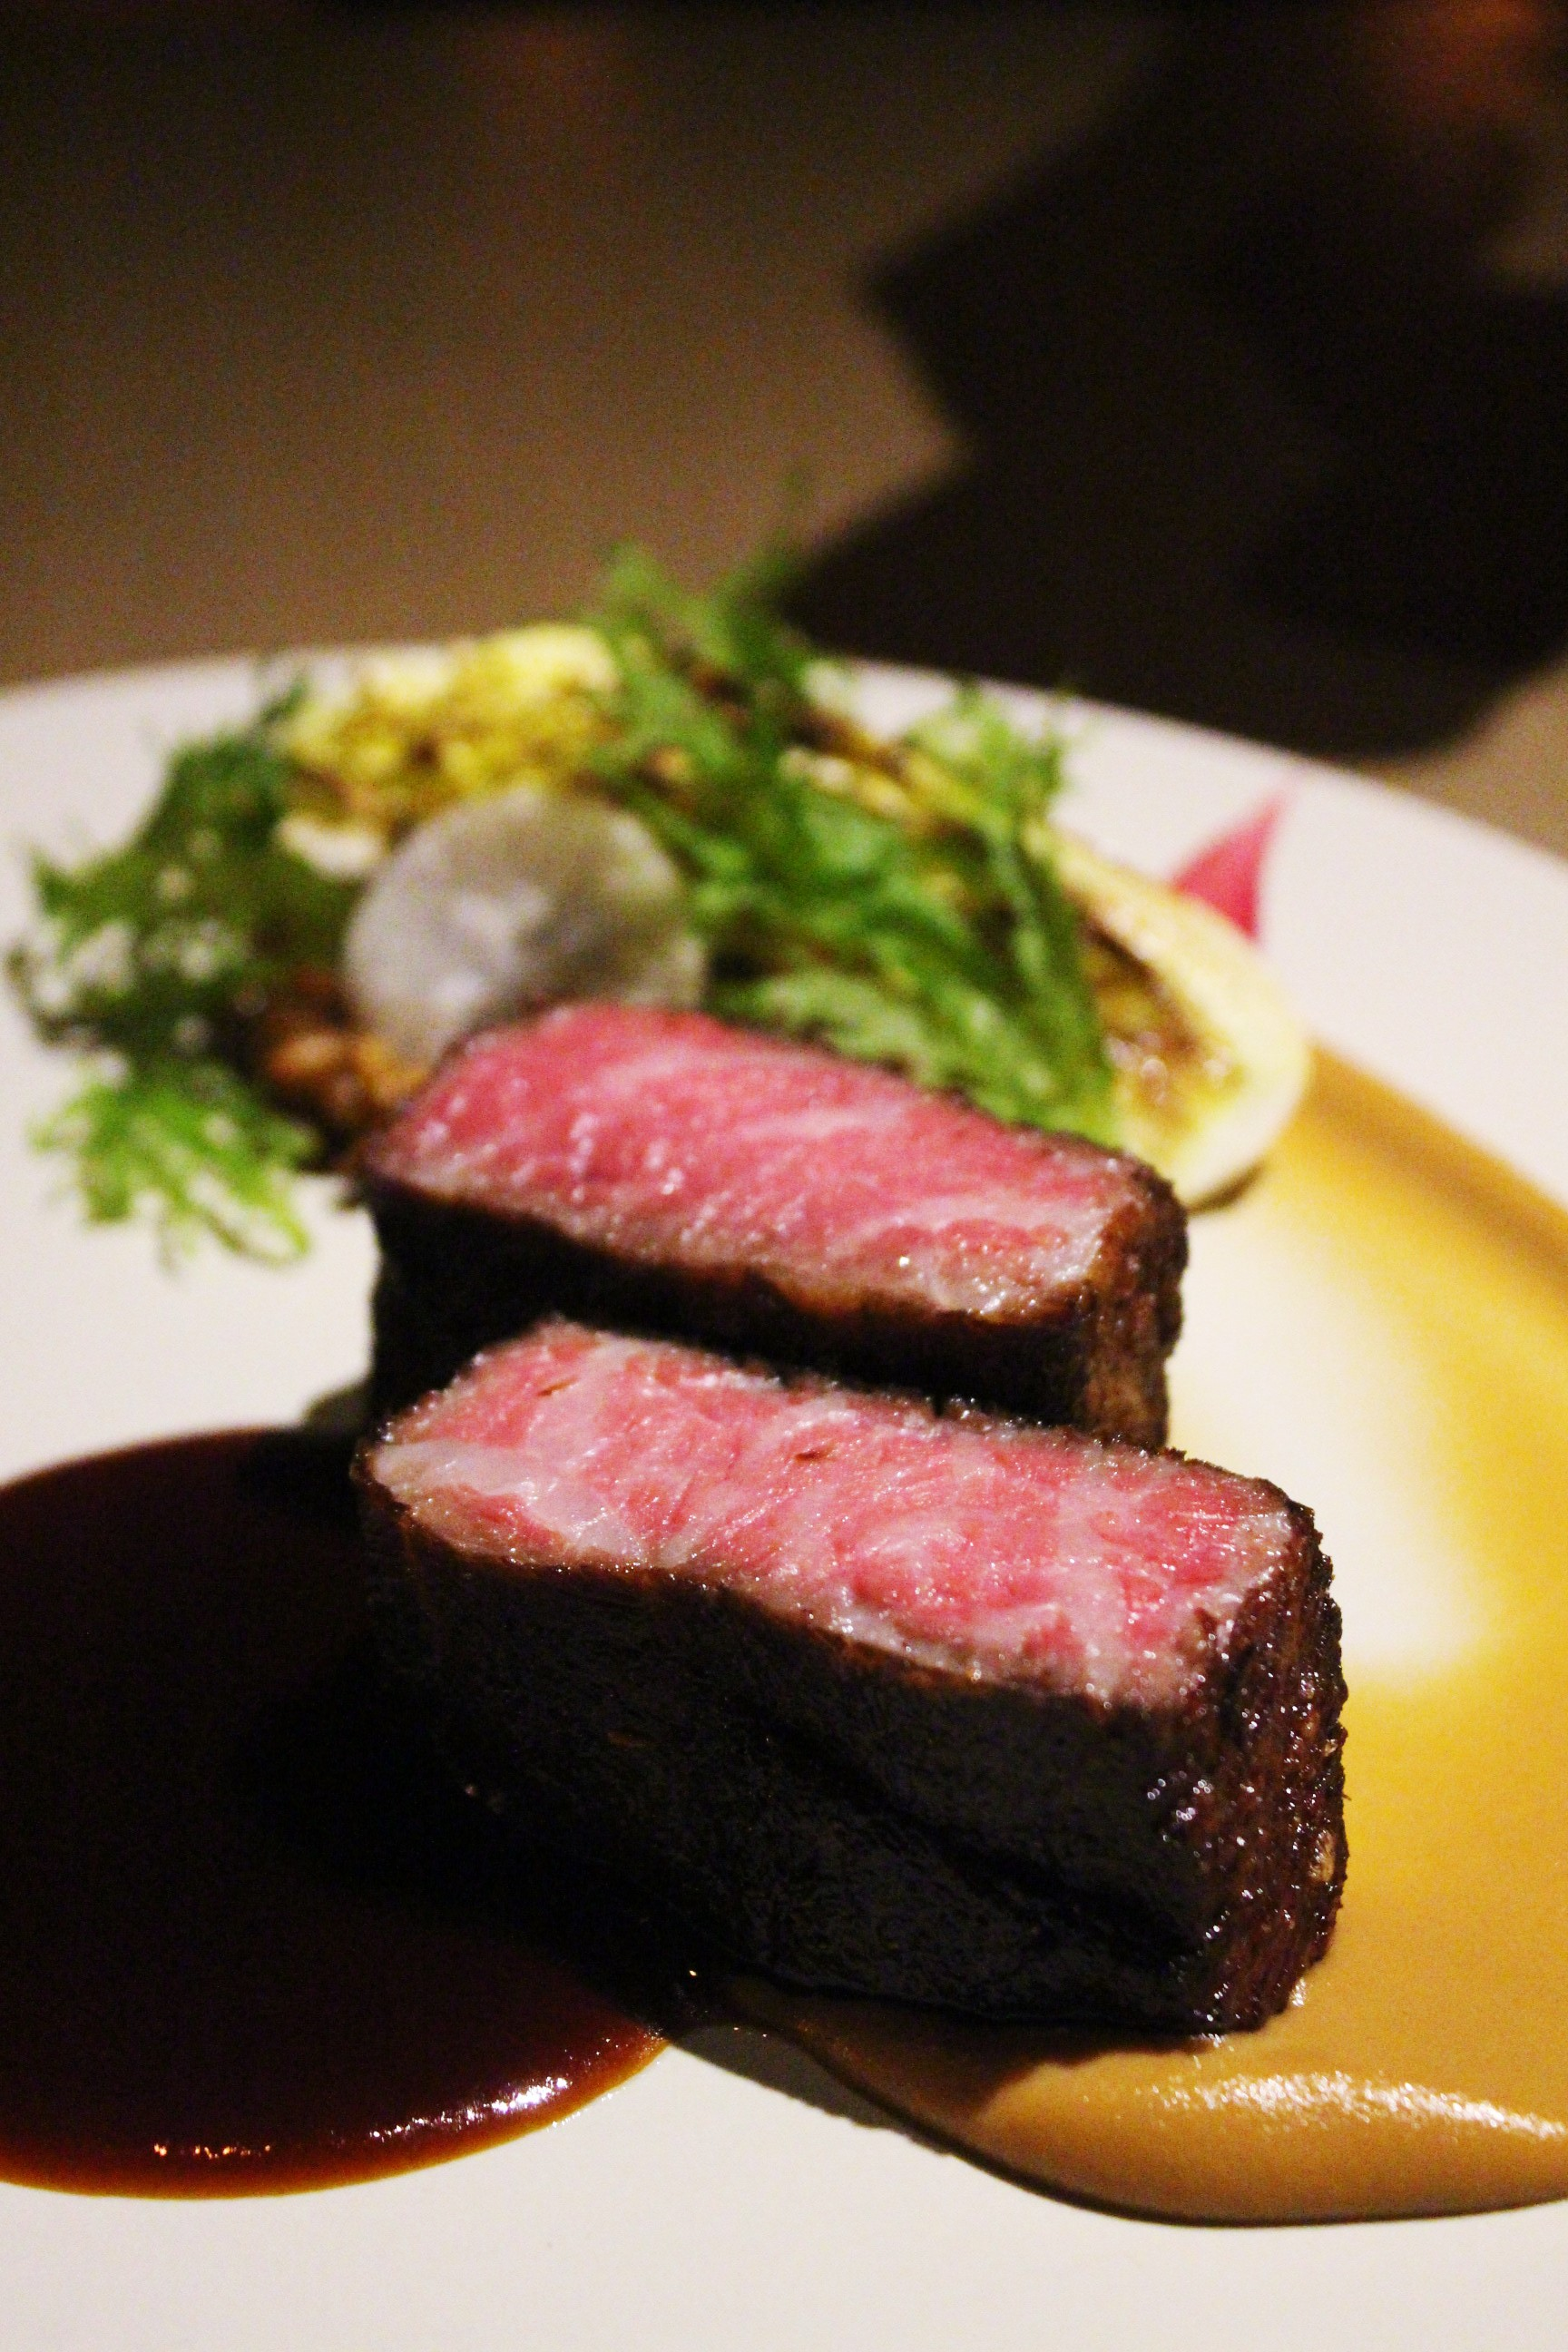 Beef Shortrib Pastrami with Spices, Local Grains, Baby Napa Cabbage at Mume in Taiwan